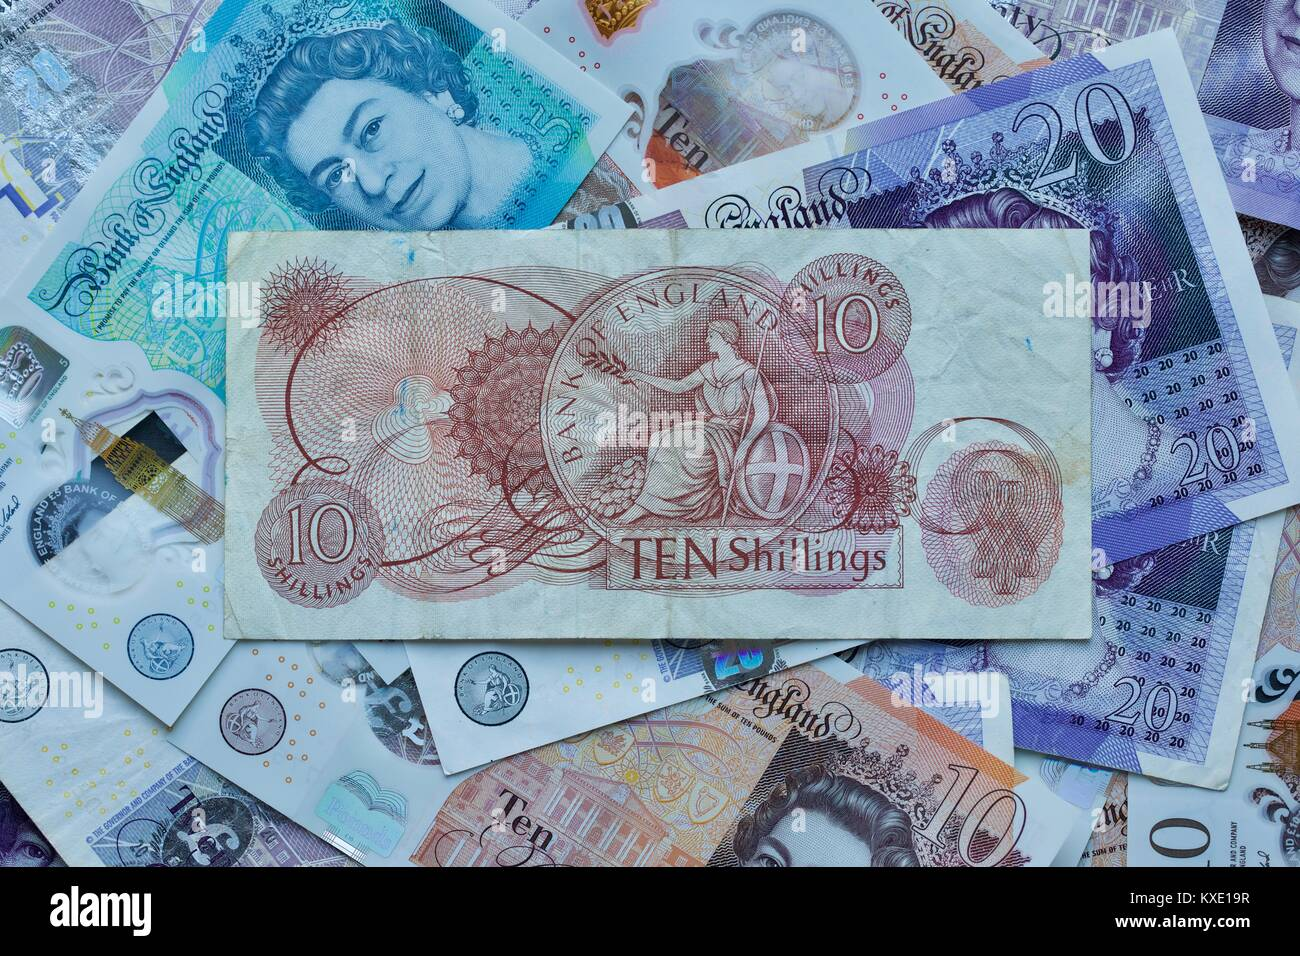 Bank of England 10 Shilling Banknote with the polymer bank notes in the background - Stock Image